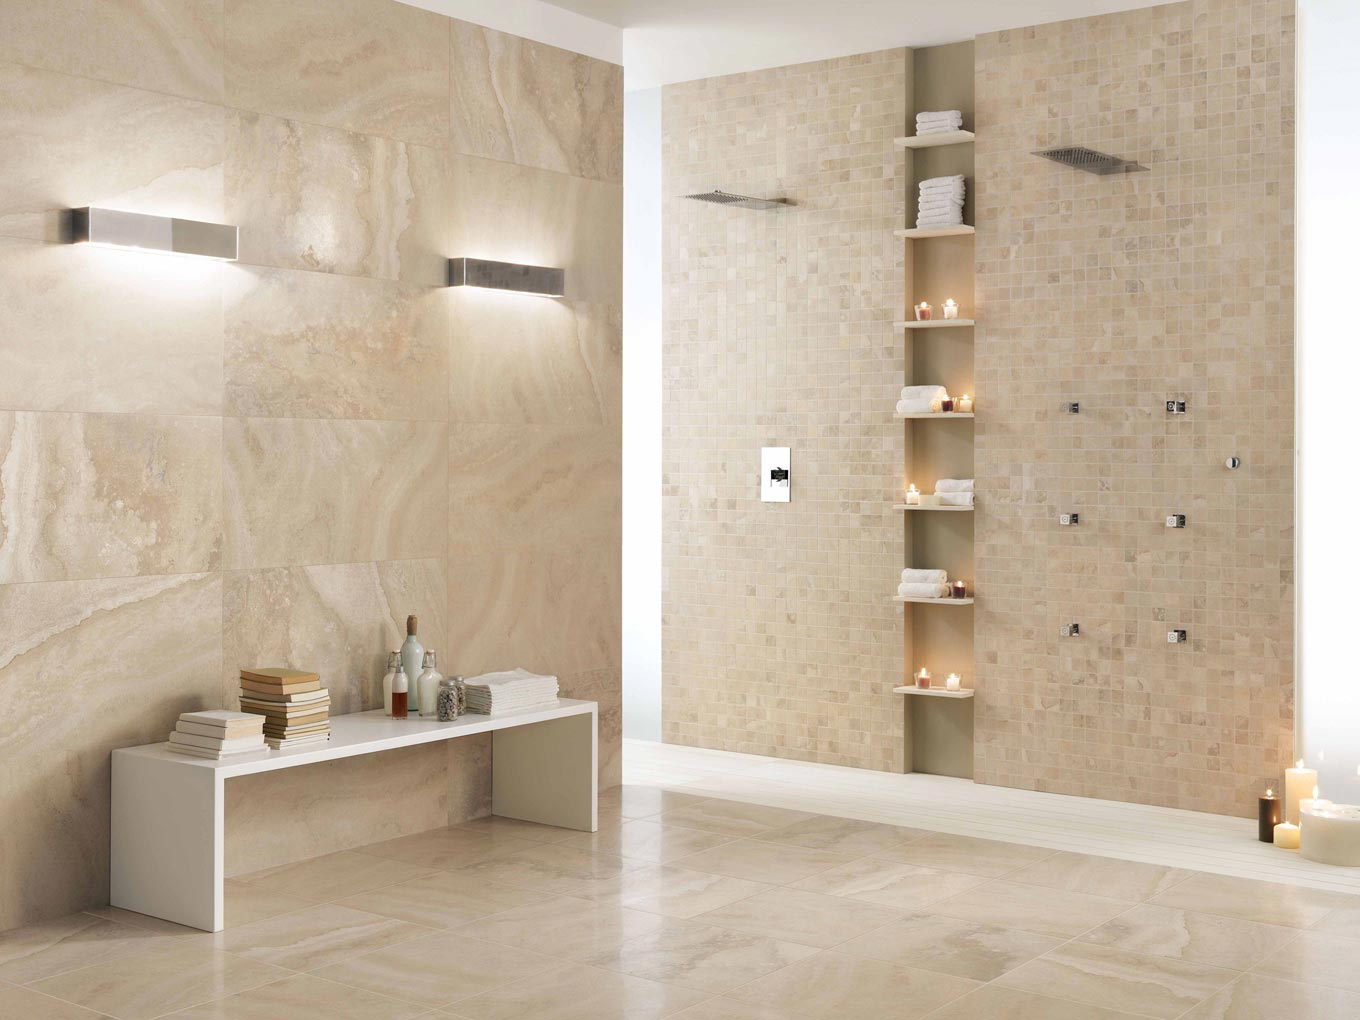 Caracalla Series C Amp S Tile Distributors